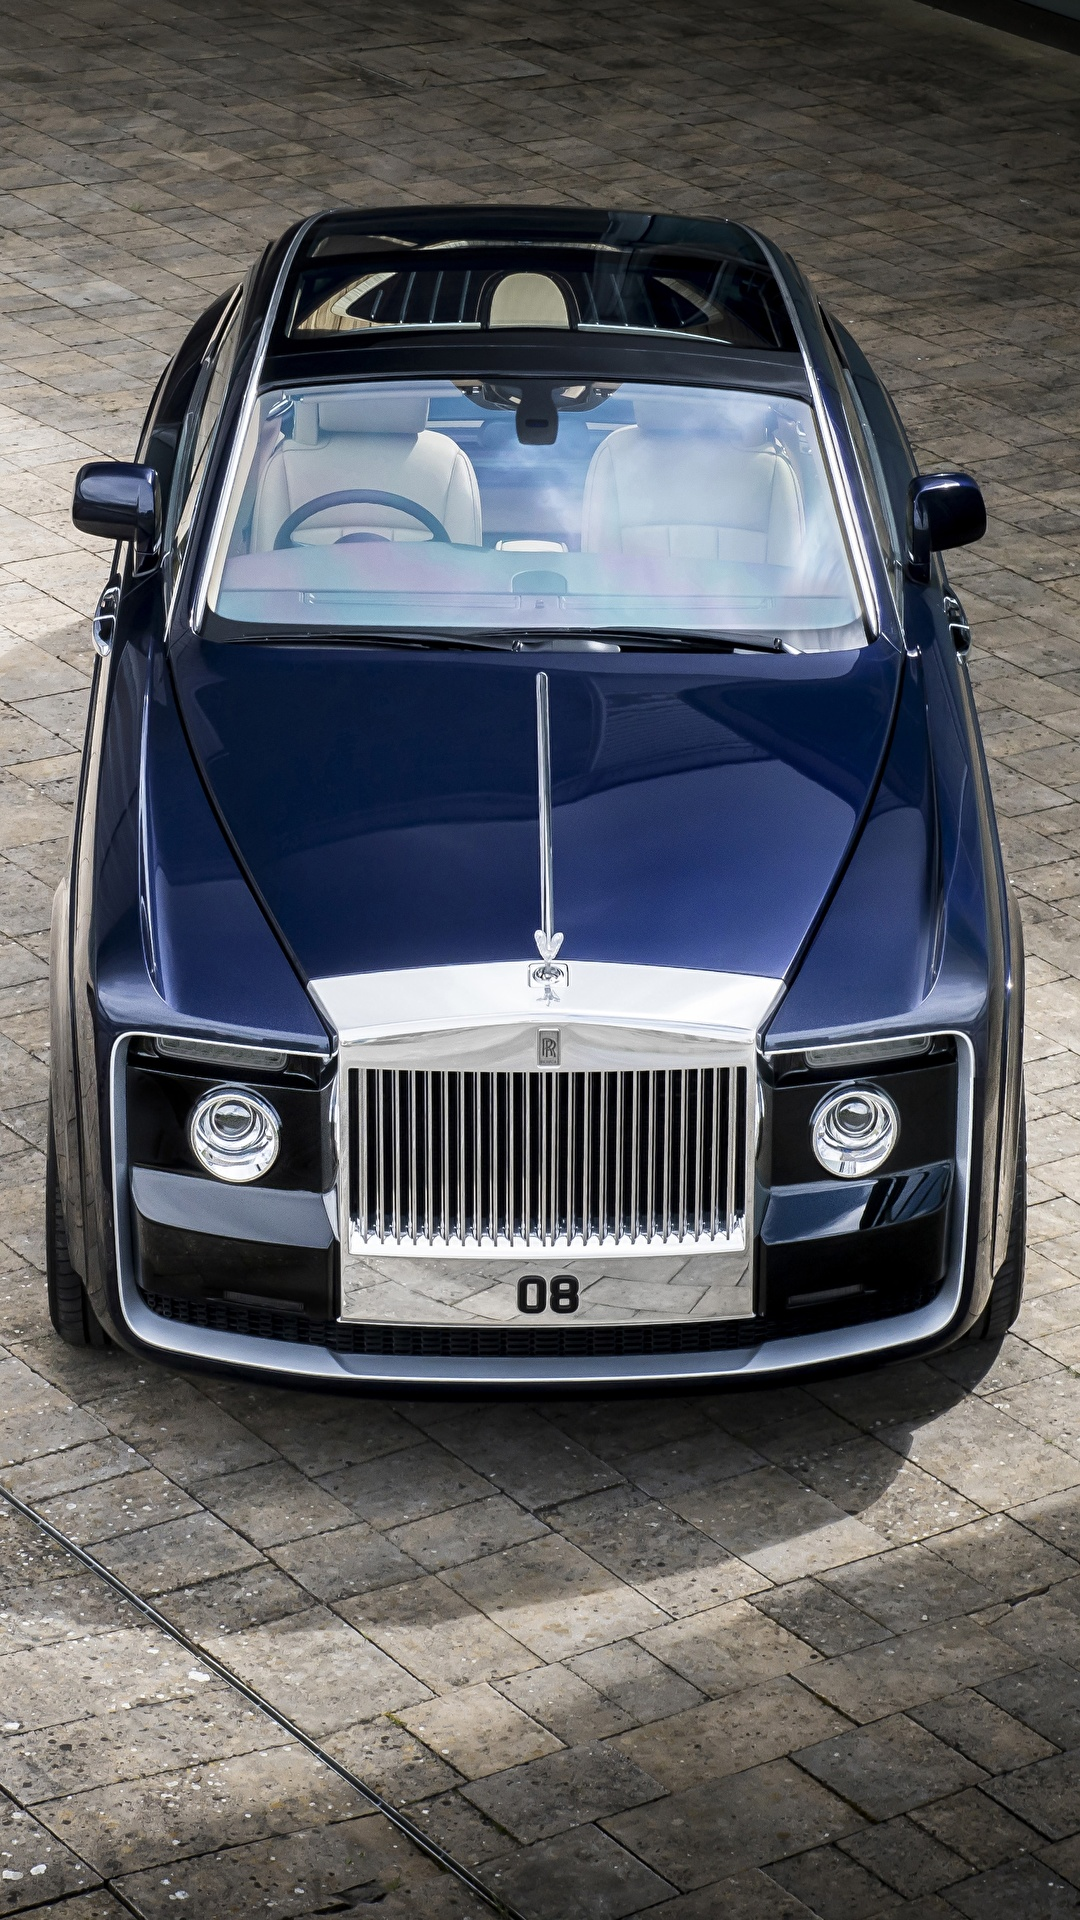 Image Rolls Royce 2017 Sweptail Blue Auto Metallic From 1080x1920